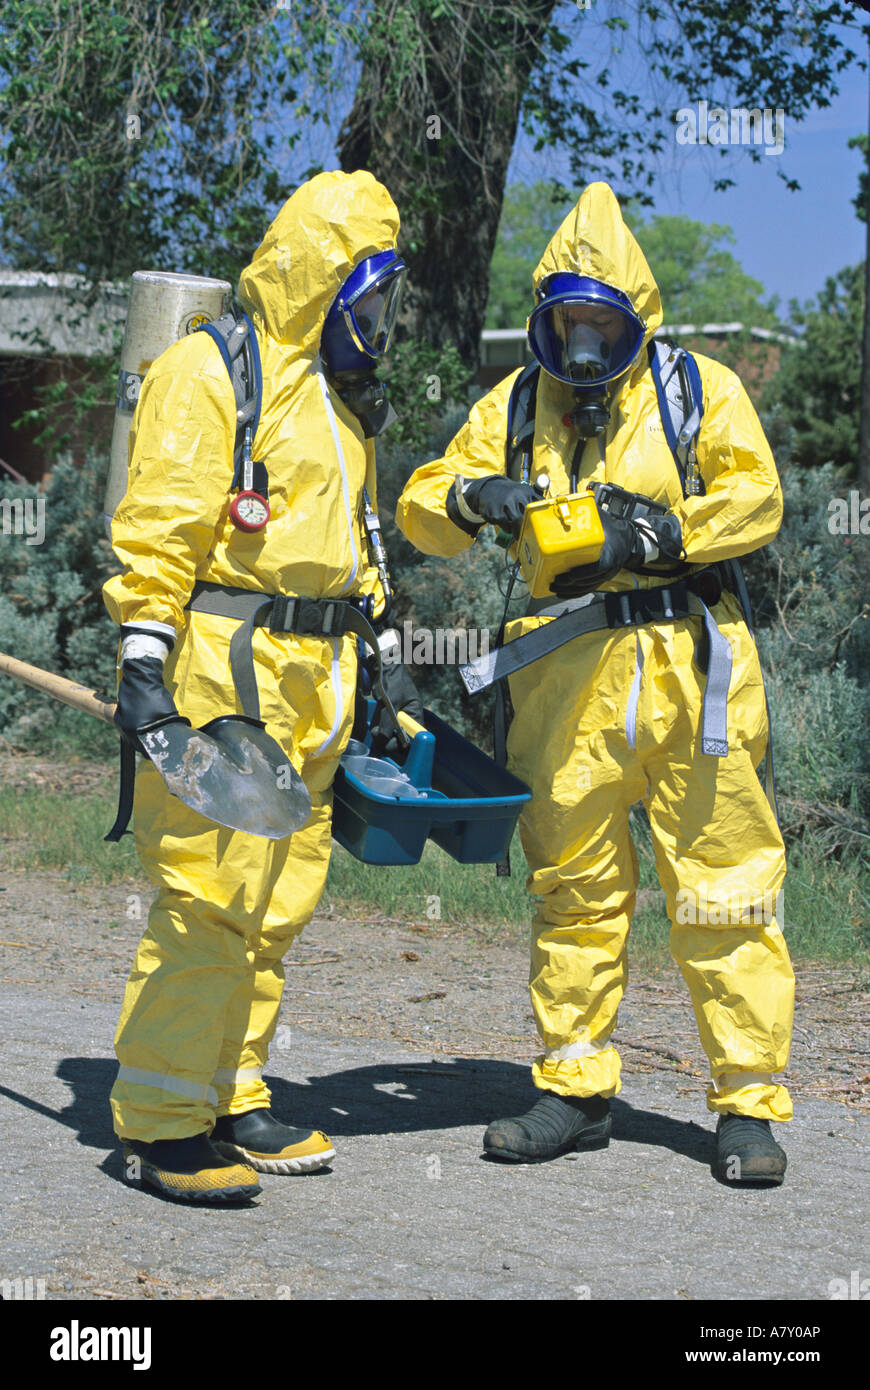 Hazmat team prepares to approach toxic substance spill. - Stock Image